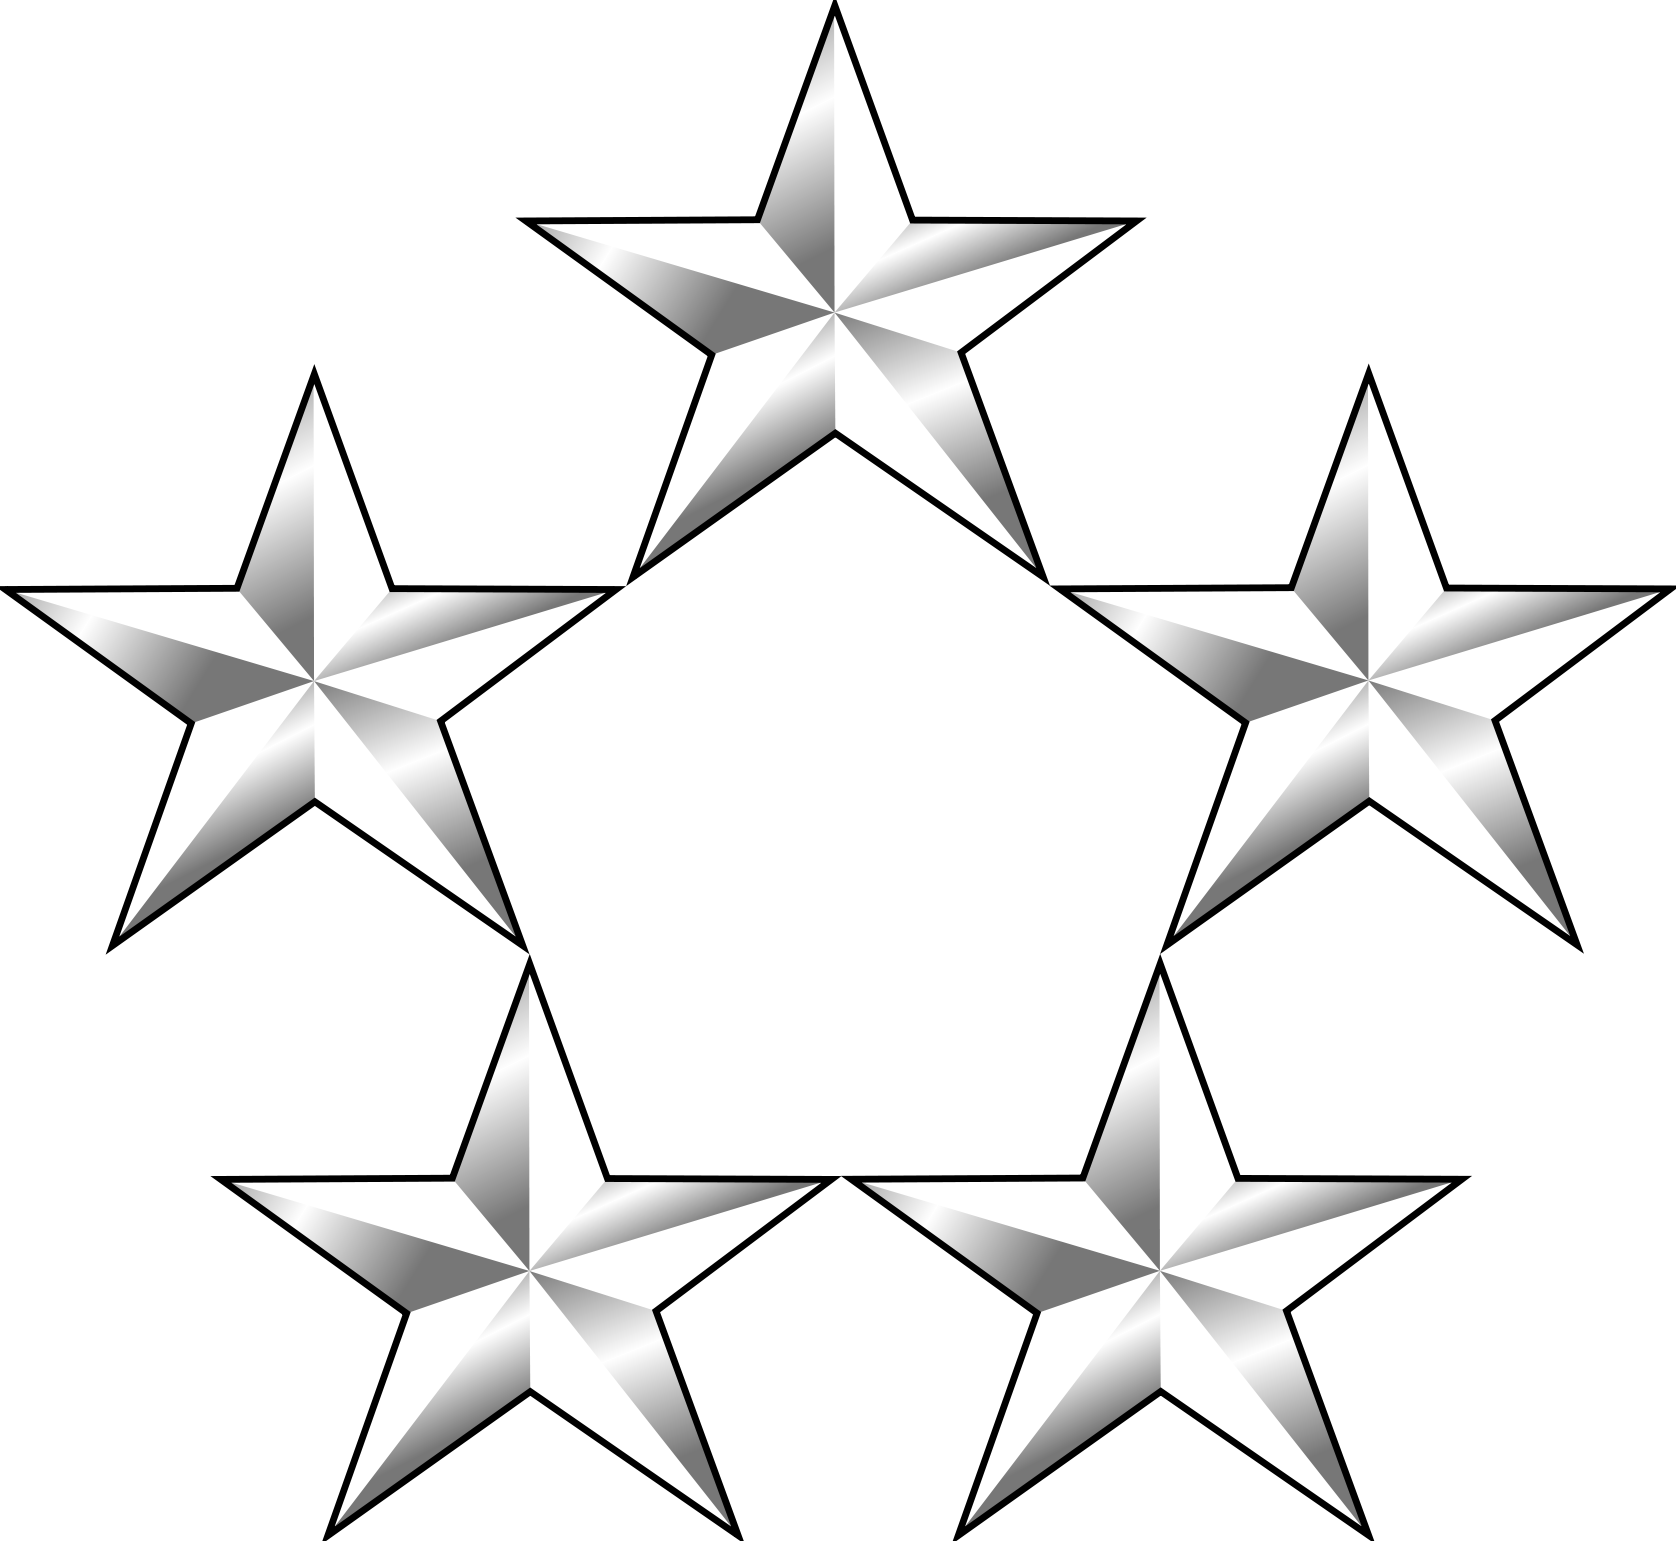 File star wikimedia commons. 5 stars png picture transparent download